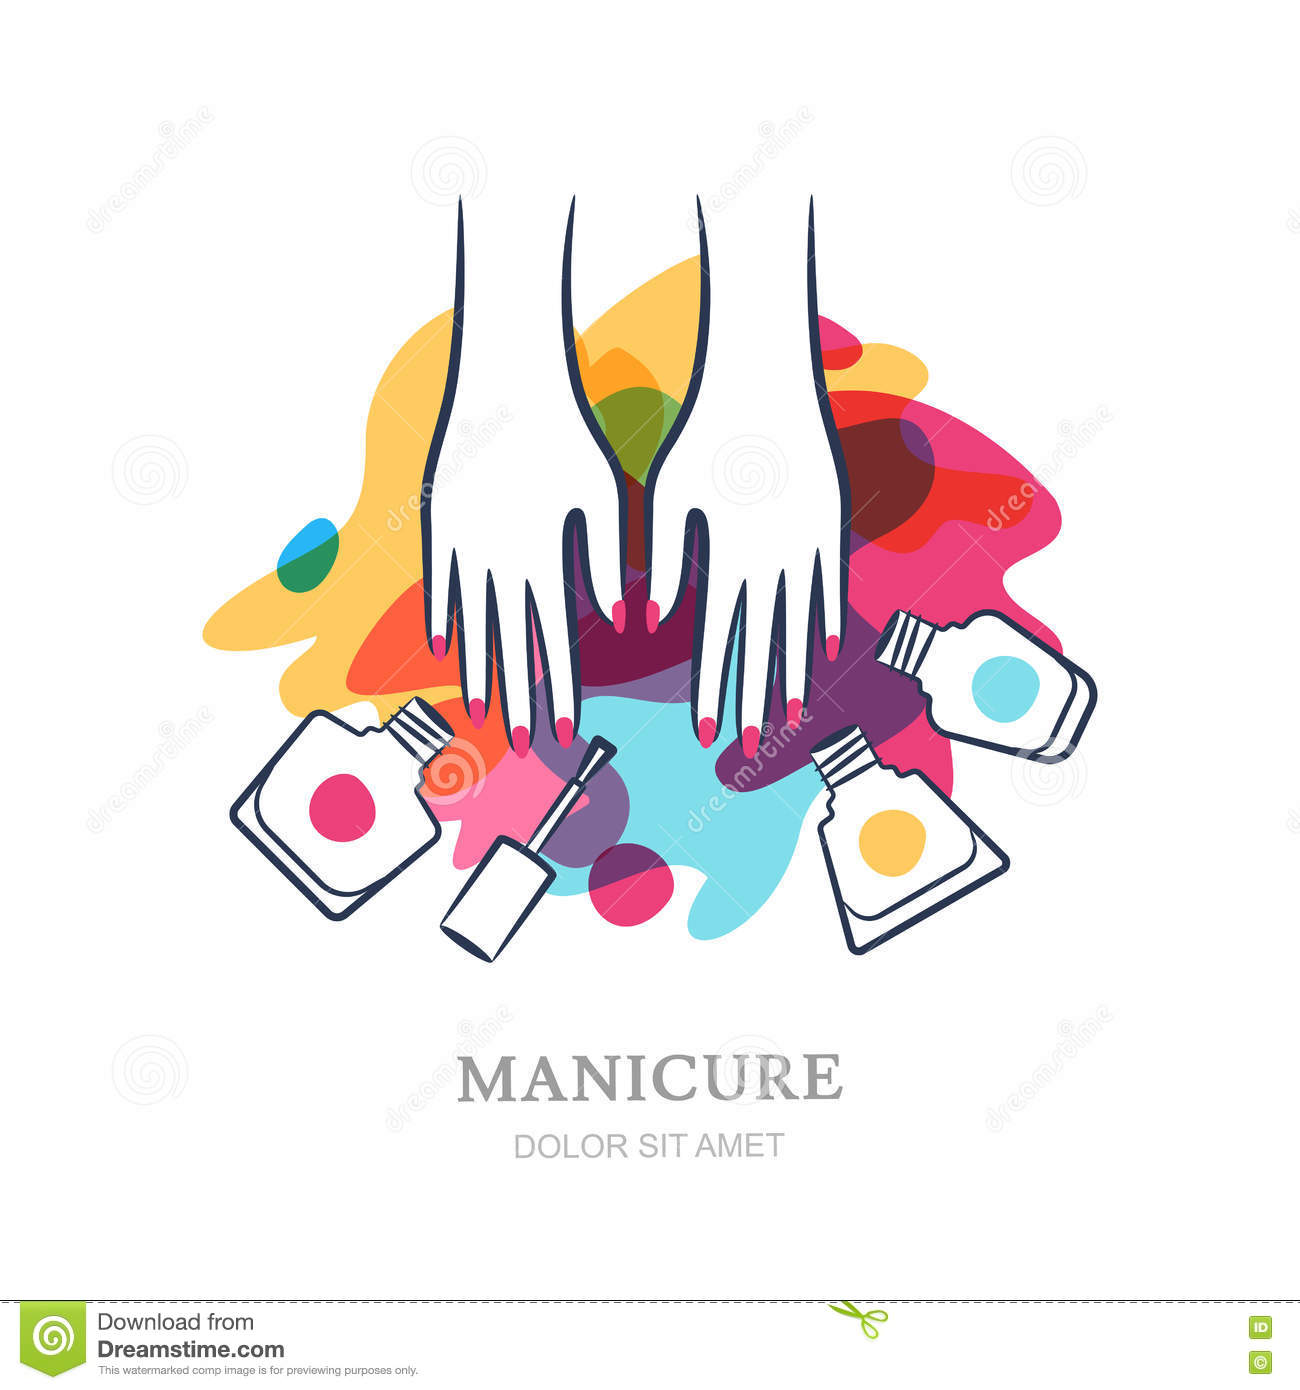 Nail diagram labeling free download wiring diagram logo female hands on color nail polish splash background vector logo label emblem design elements nail deficiency symptoms nail structure diagram pooptronica Gallery